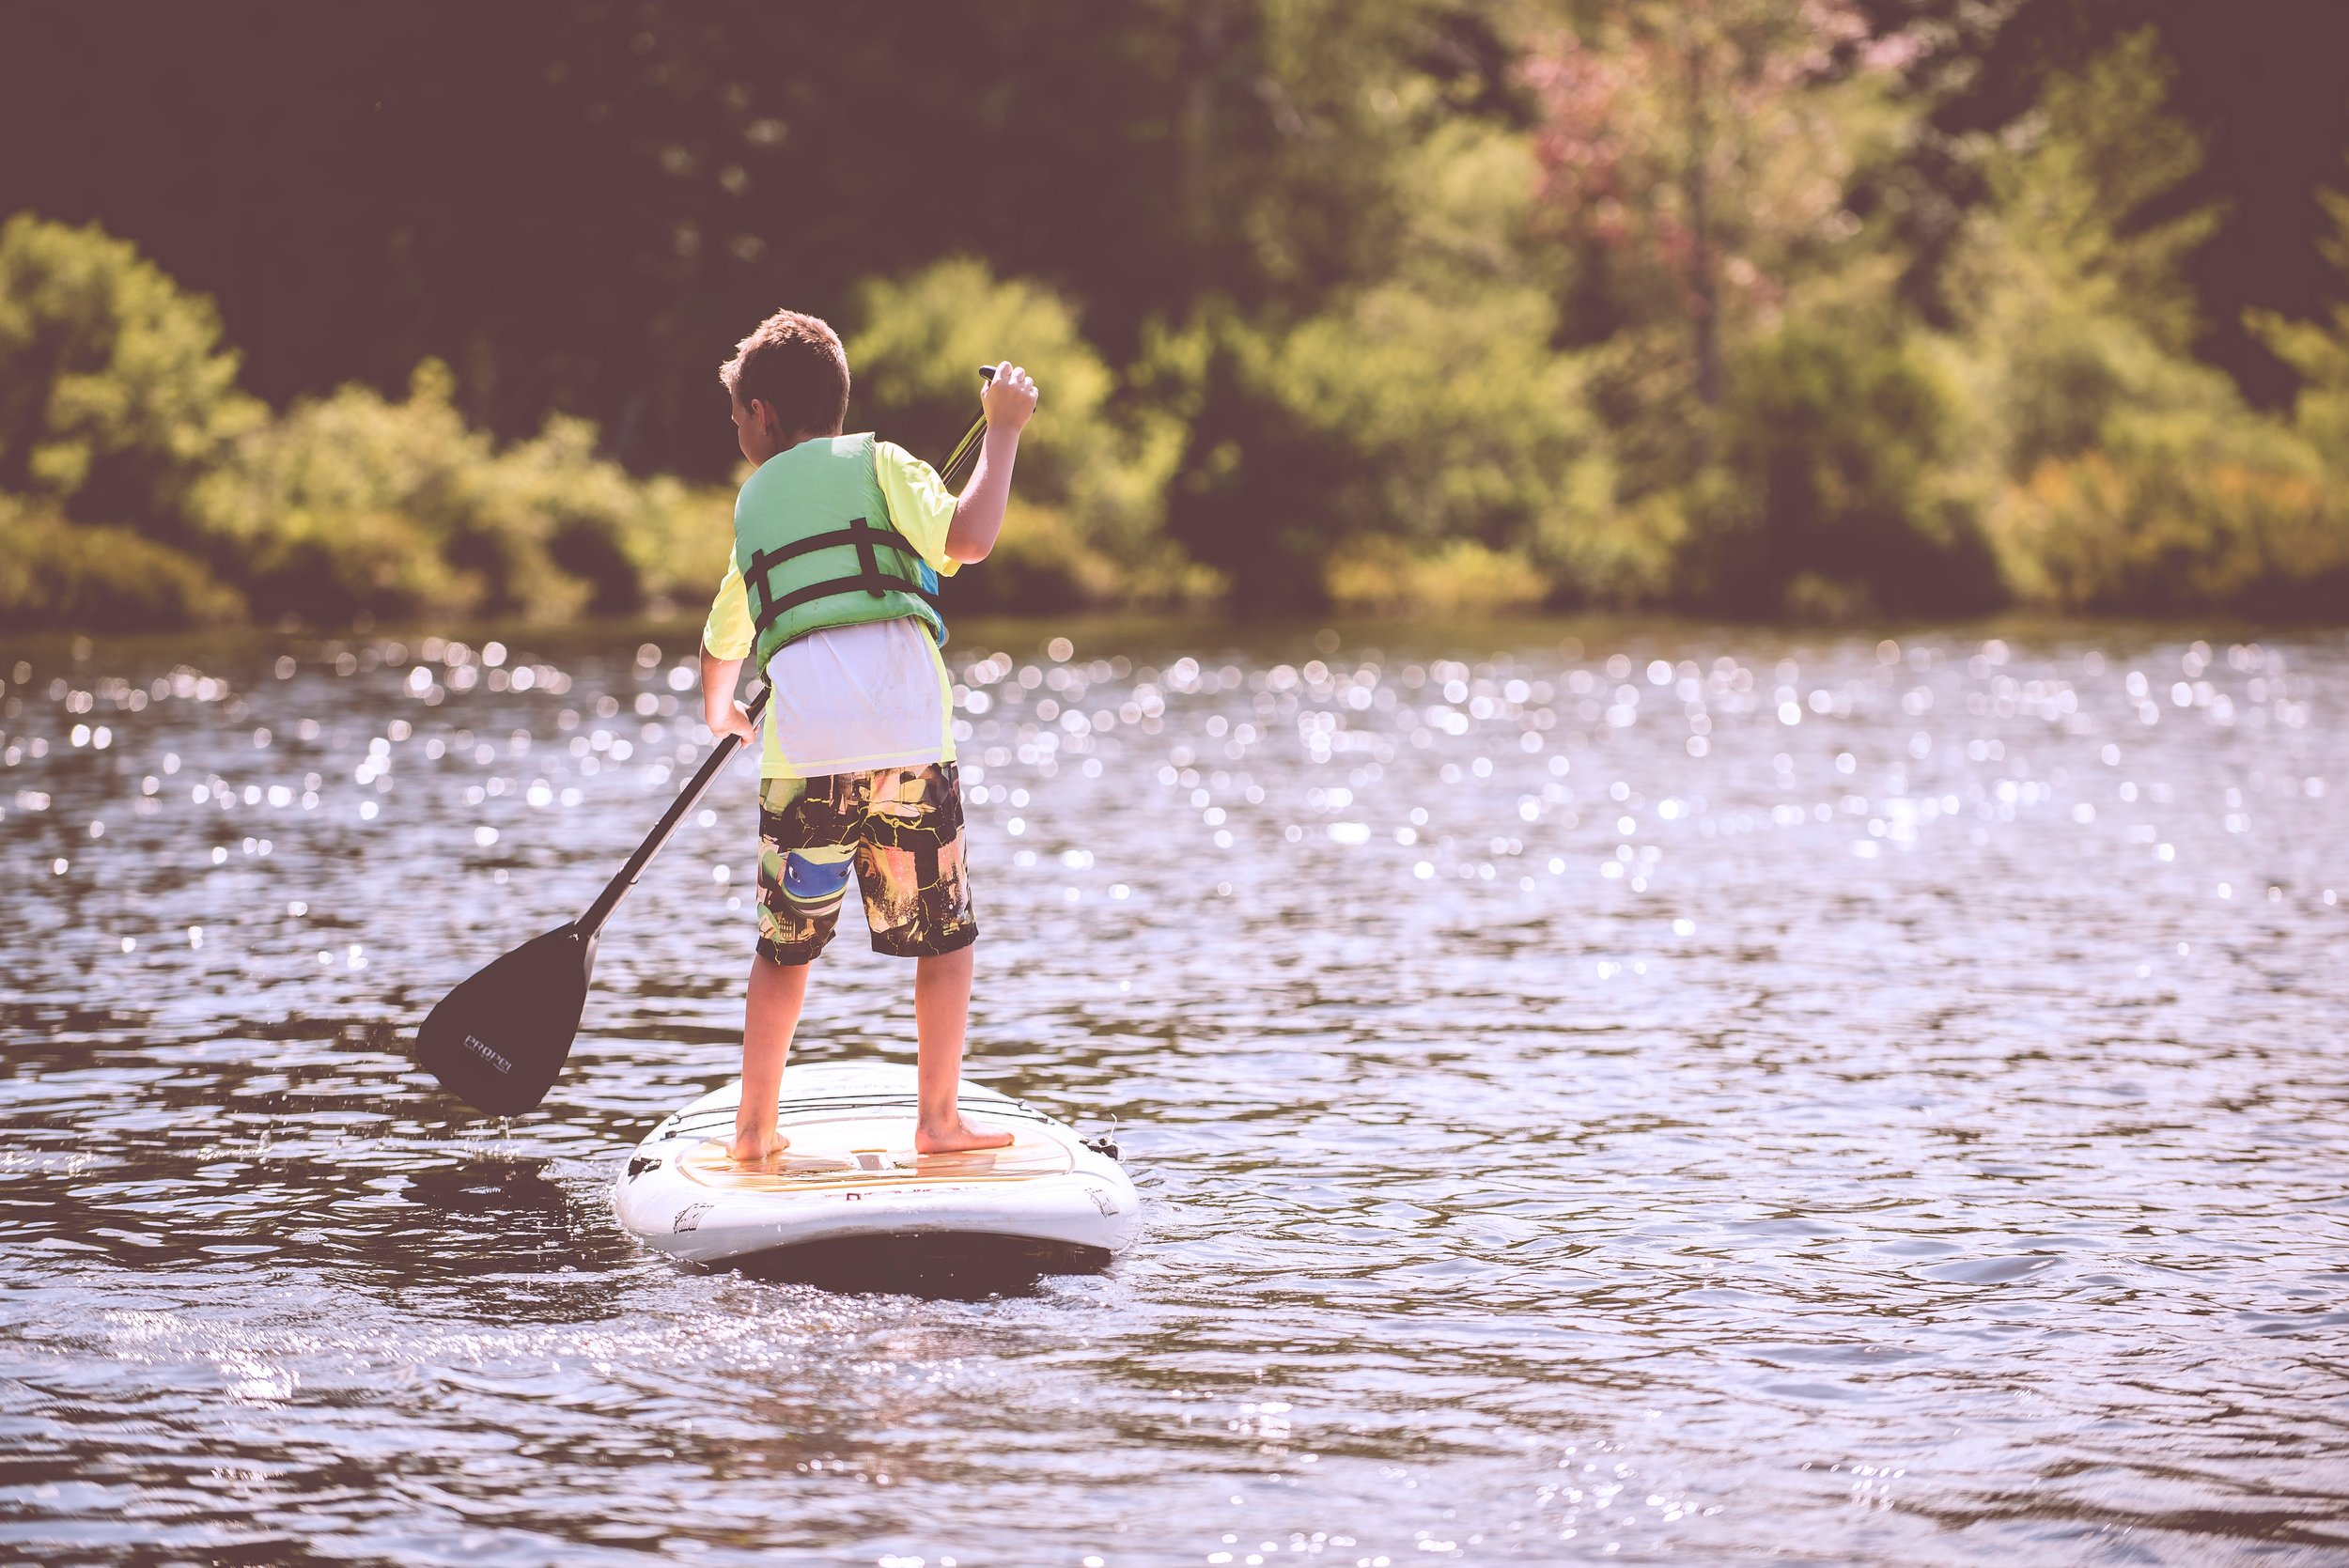 Water Activities - Lynchburg, VA has so many beautiful waterfalls to enjoy and swim in as well as lakes to go canoeing, kayaking, paddleboarding, tubing, or paddleboating. Here's a list of some places to have summer fun!